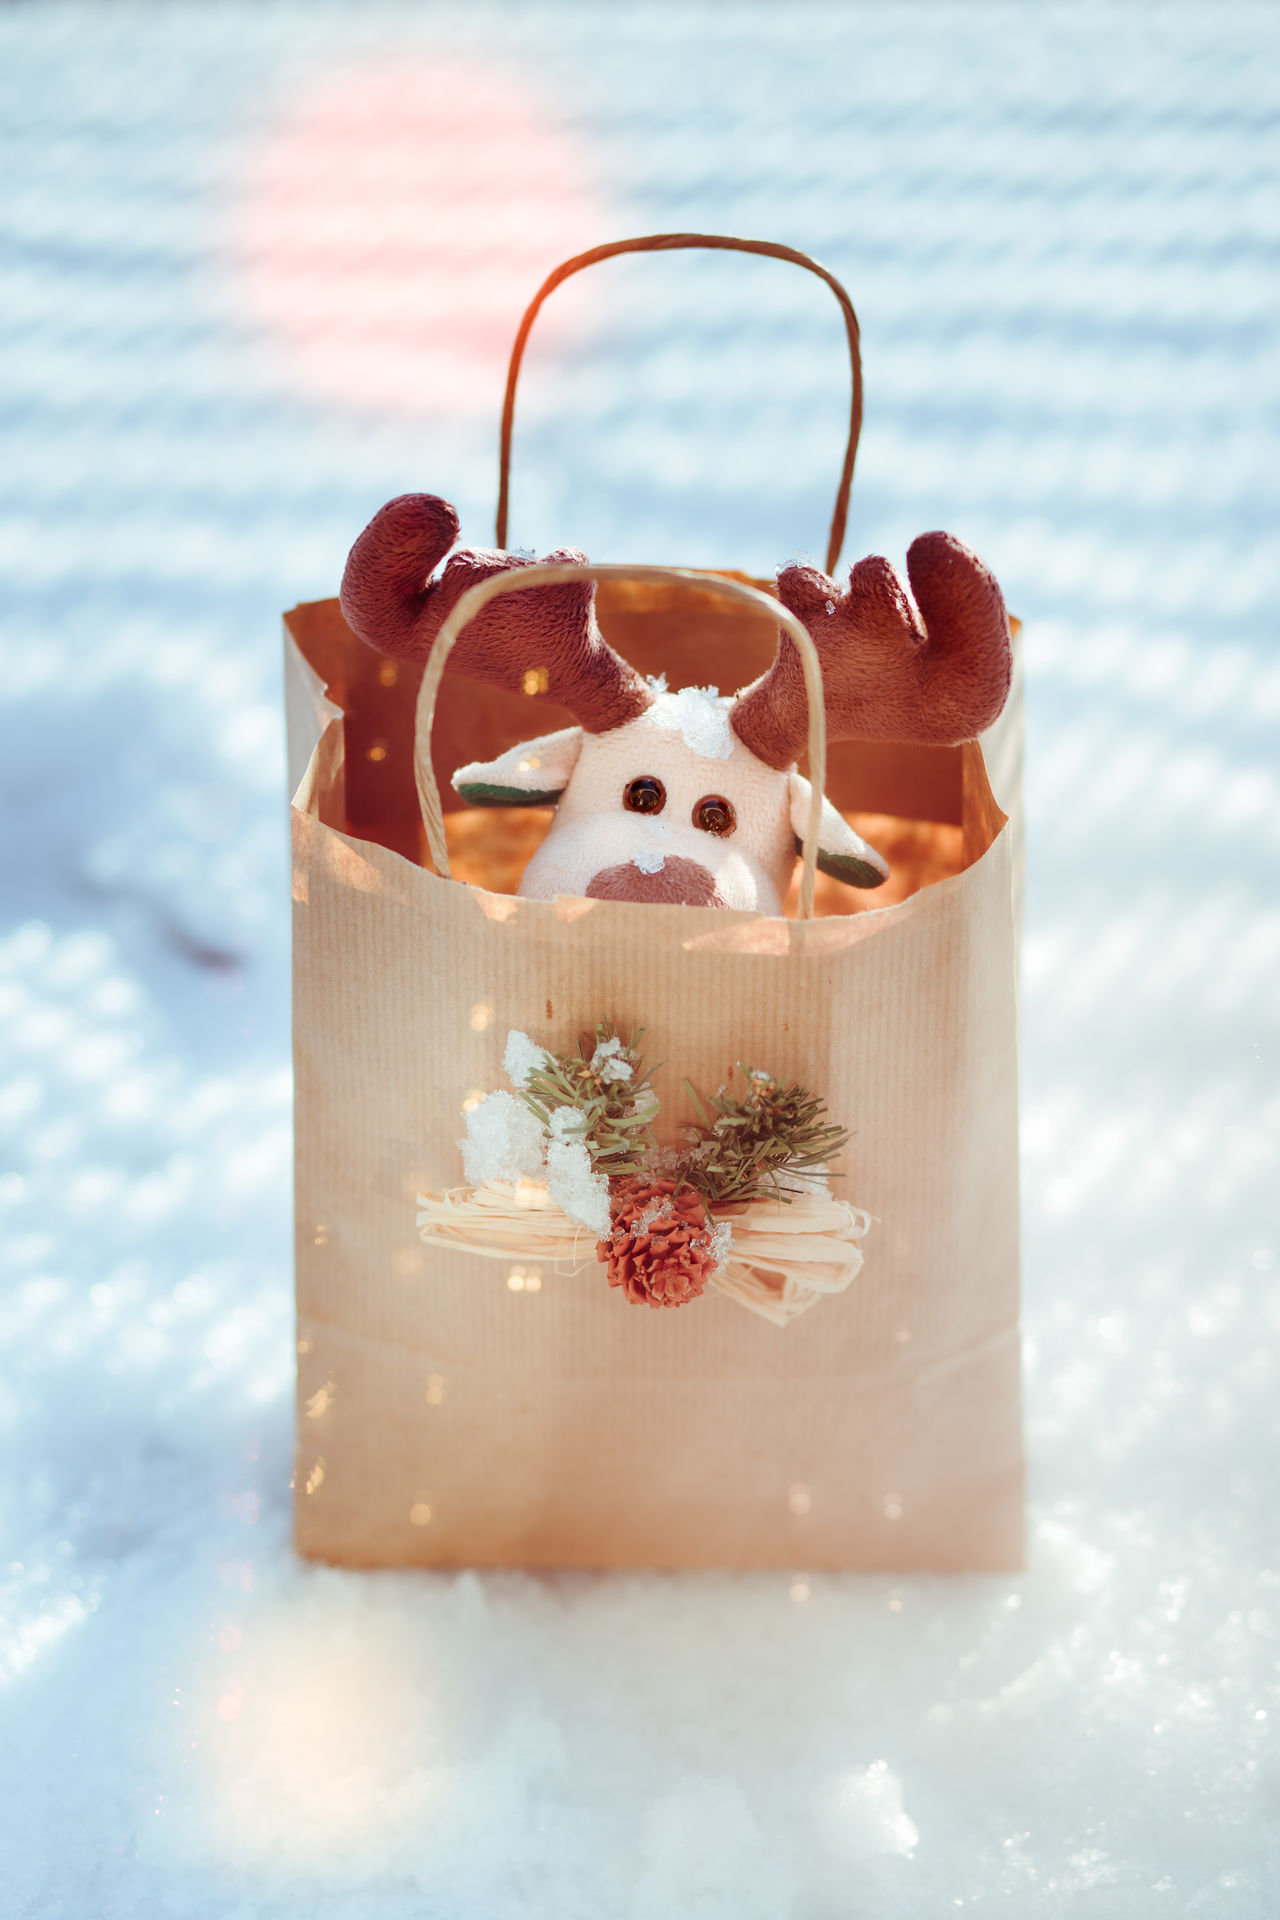 Reindeer toy in a paper bag for Christmas gift Bag Blur Blurred Celebrating Celebration Christmas Gift Holiday Holidays Light Outdoors Packed Paper Present Reindeer Season  Snow Toy Tradional Tree Winter